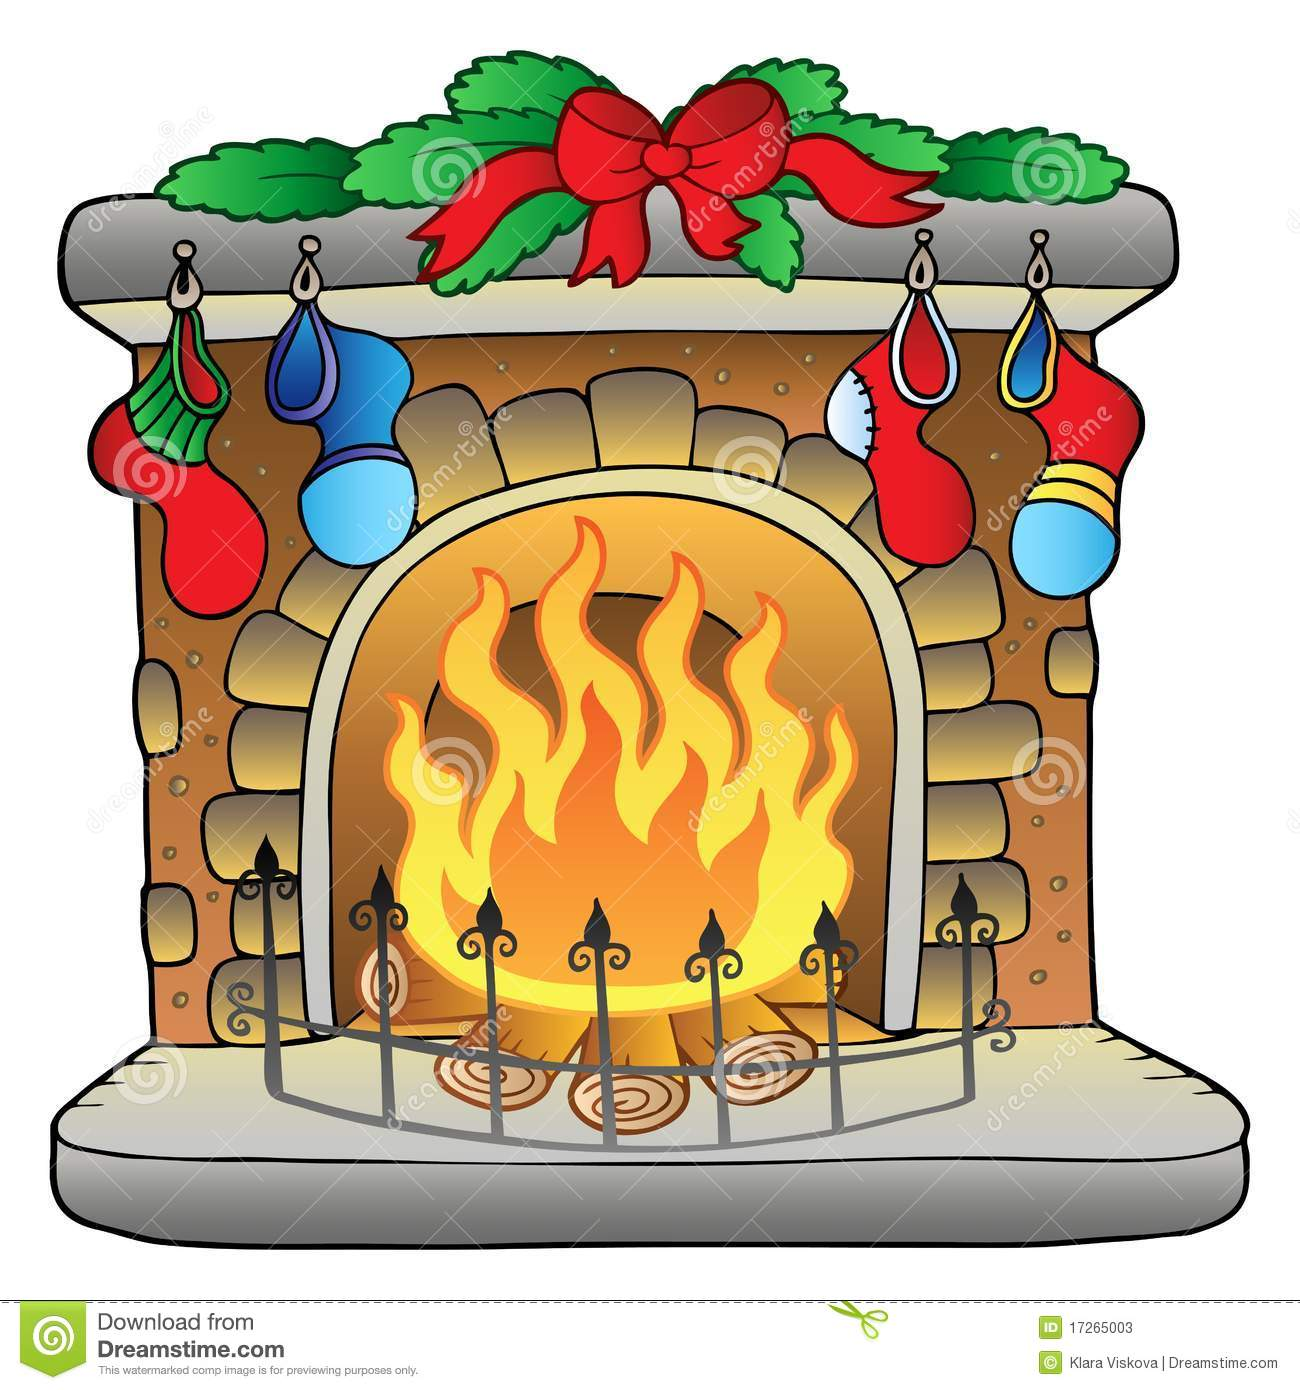 More similar stock images of ` Christmas cartoon fireplace `